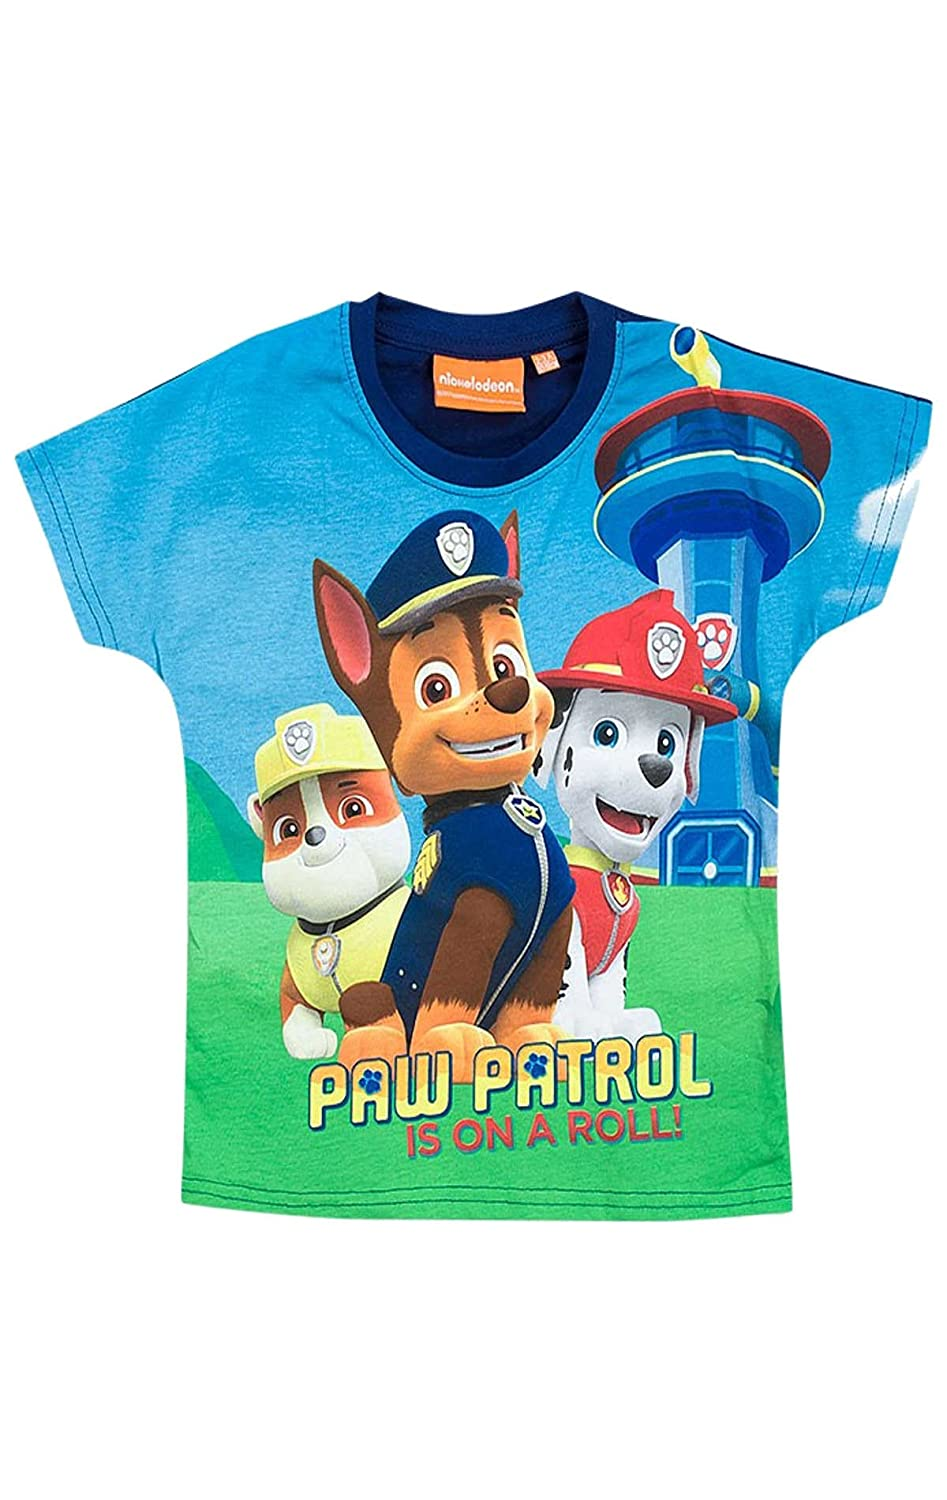 Boys Girls Official Paw Patrol Tshirt Top Age 3 to 8 Years: Amazon.co.uk:  Clothing